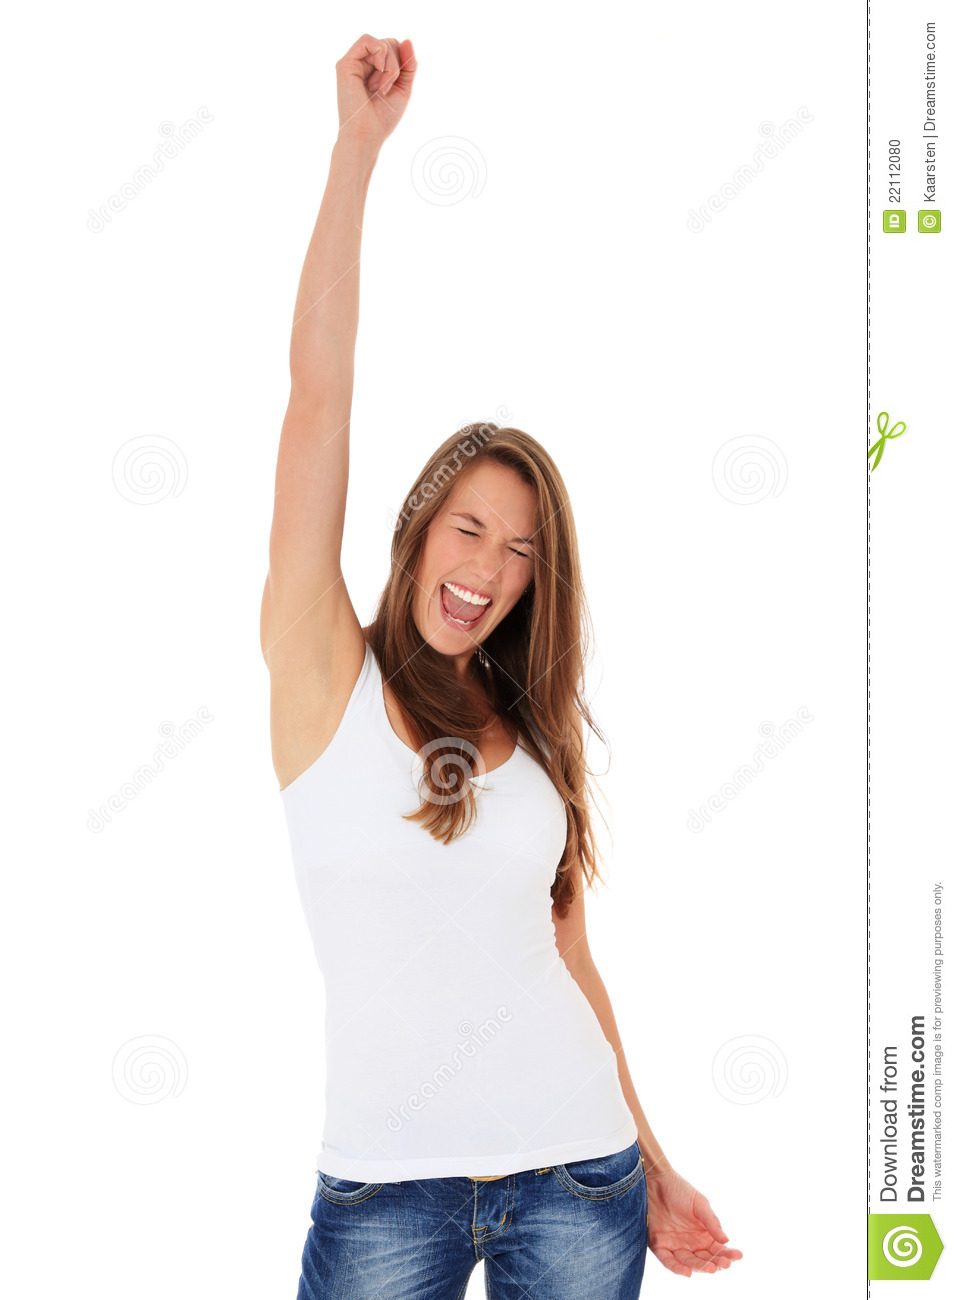 Cheering young woman stock photo. Image of isolated, happy ...